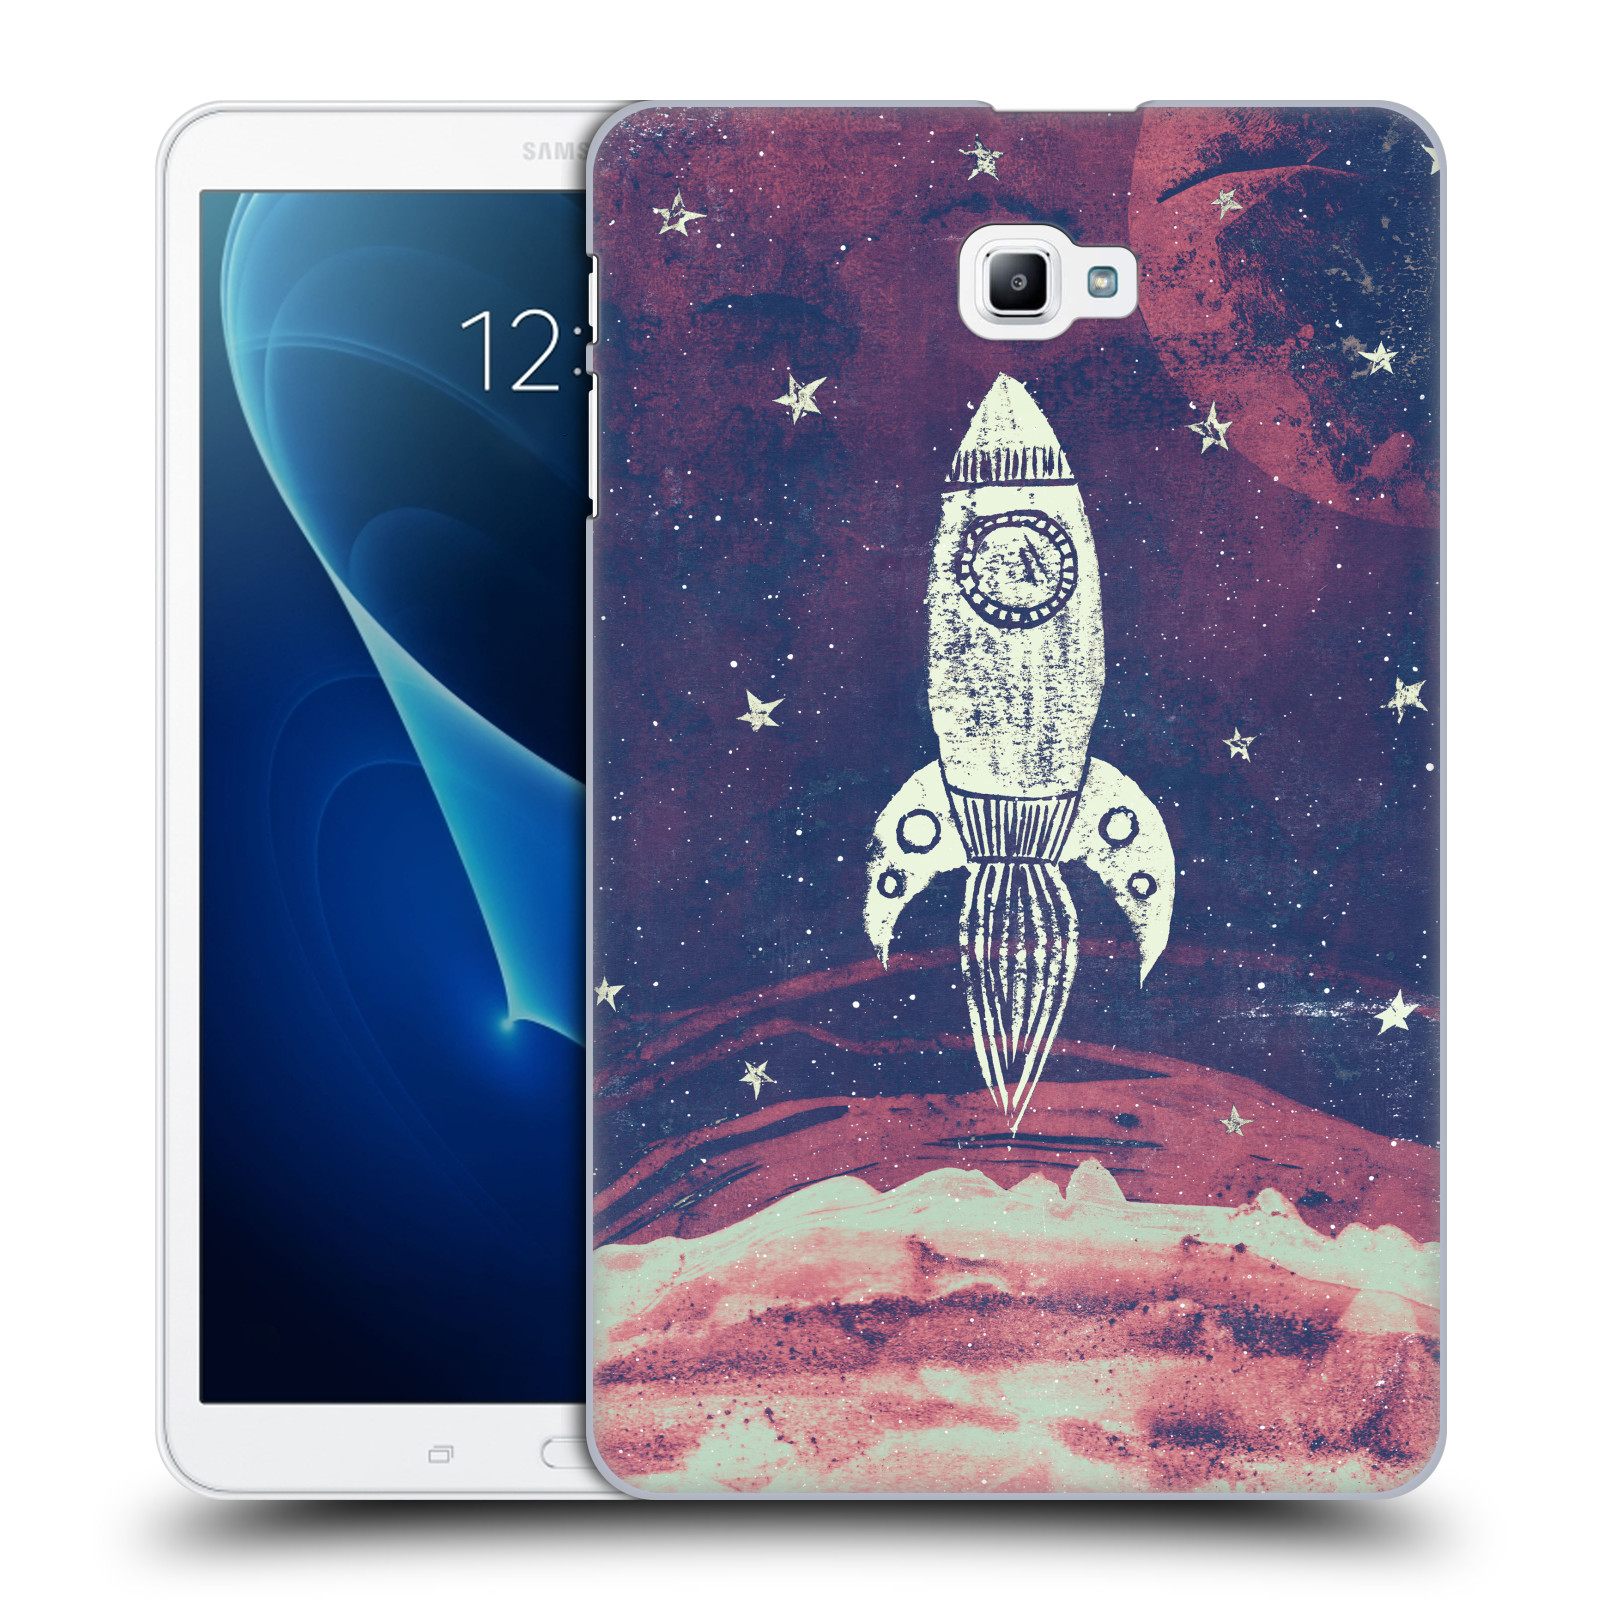 OFFICIAL-TRACIE-ANDREWS-SPACE-2-HARD-BACK-CASE-FOR-SAMSUNG-TABLETS-1